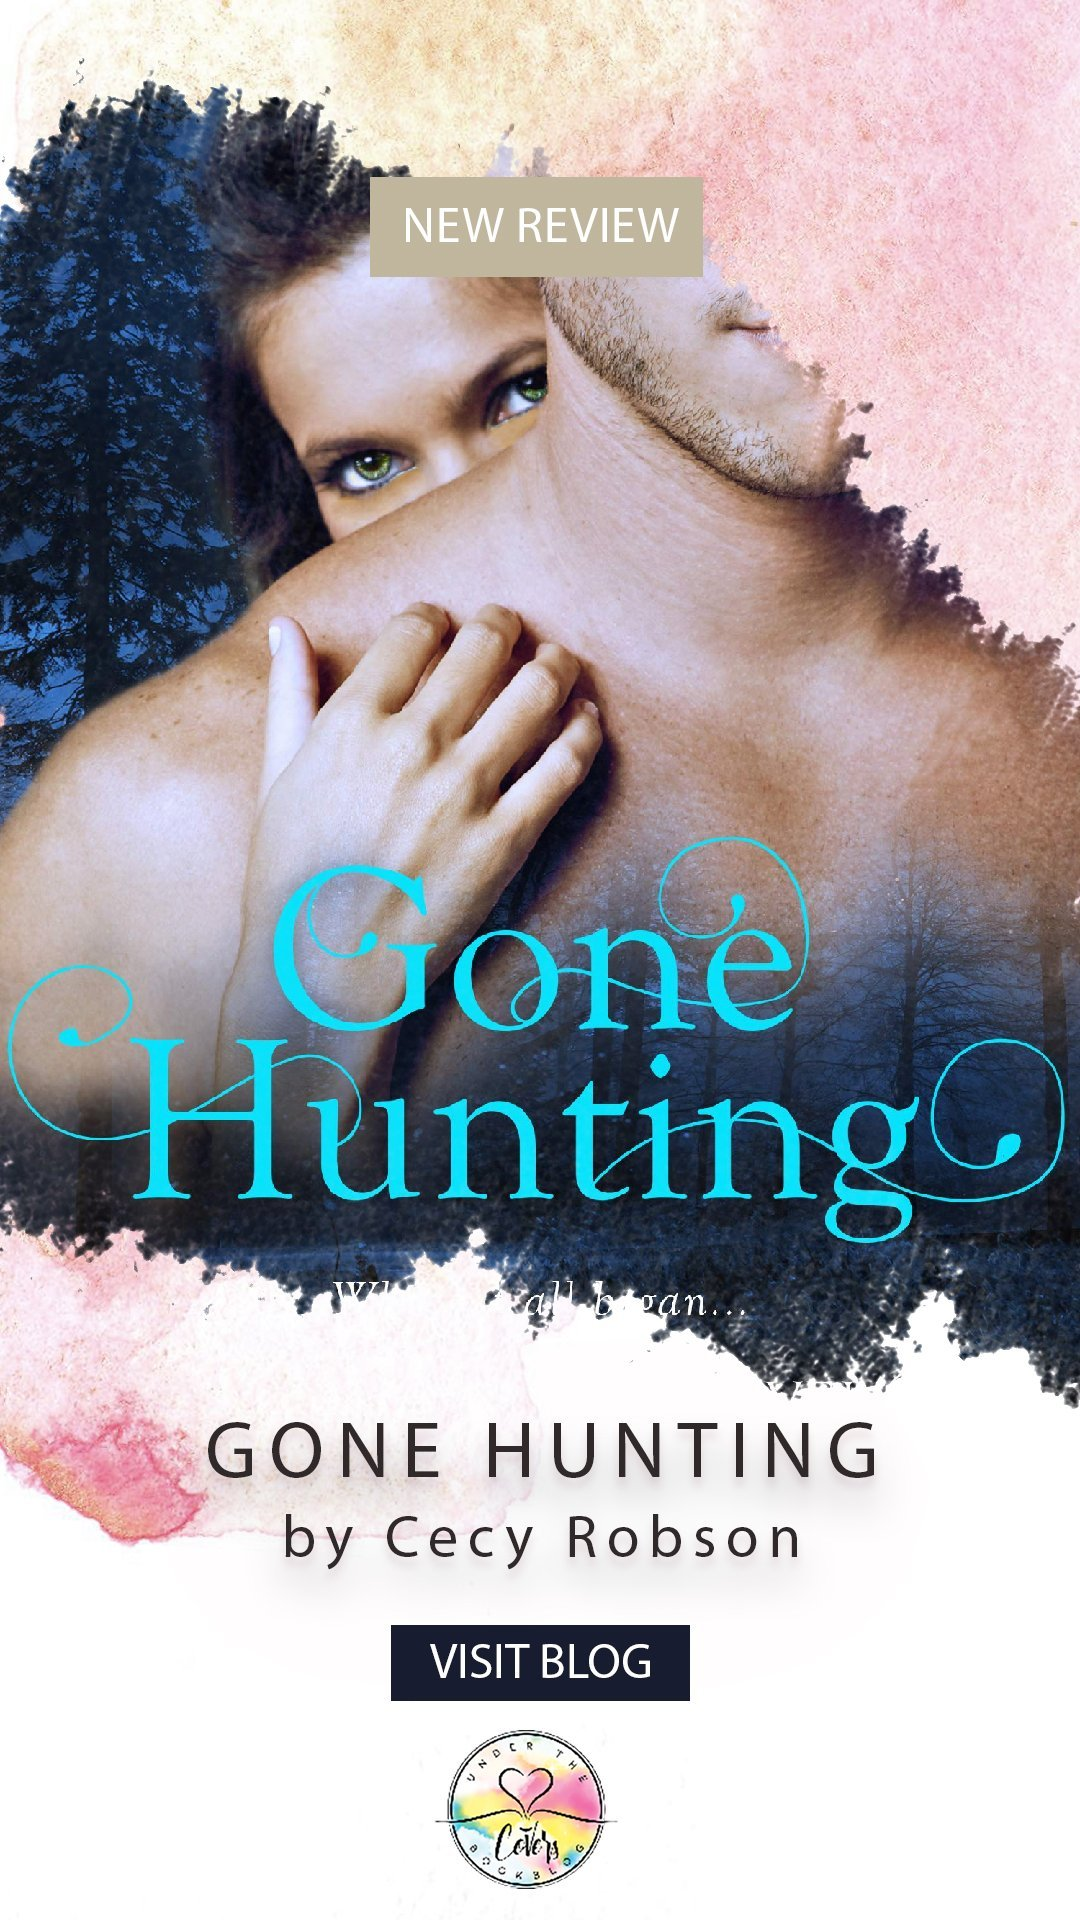 ARC Review: Gone Hunting by Cecy Robson